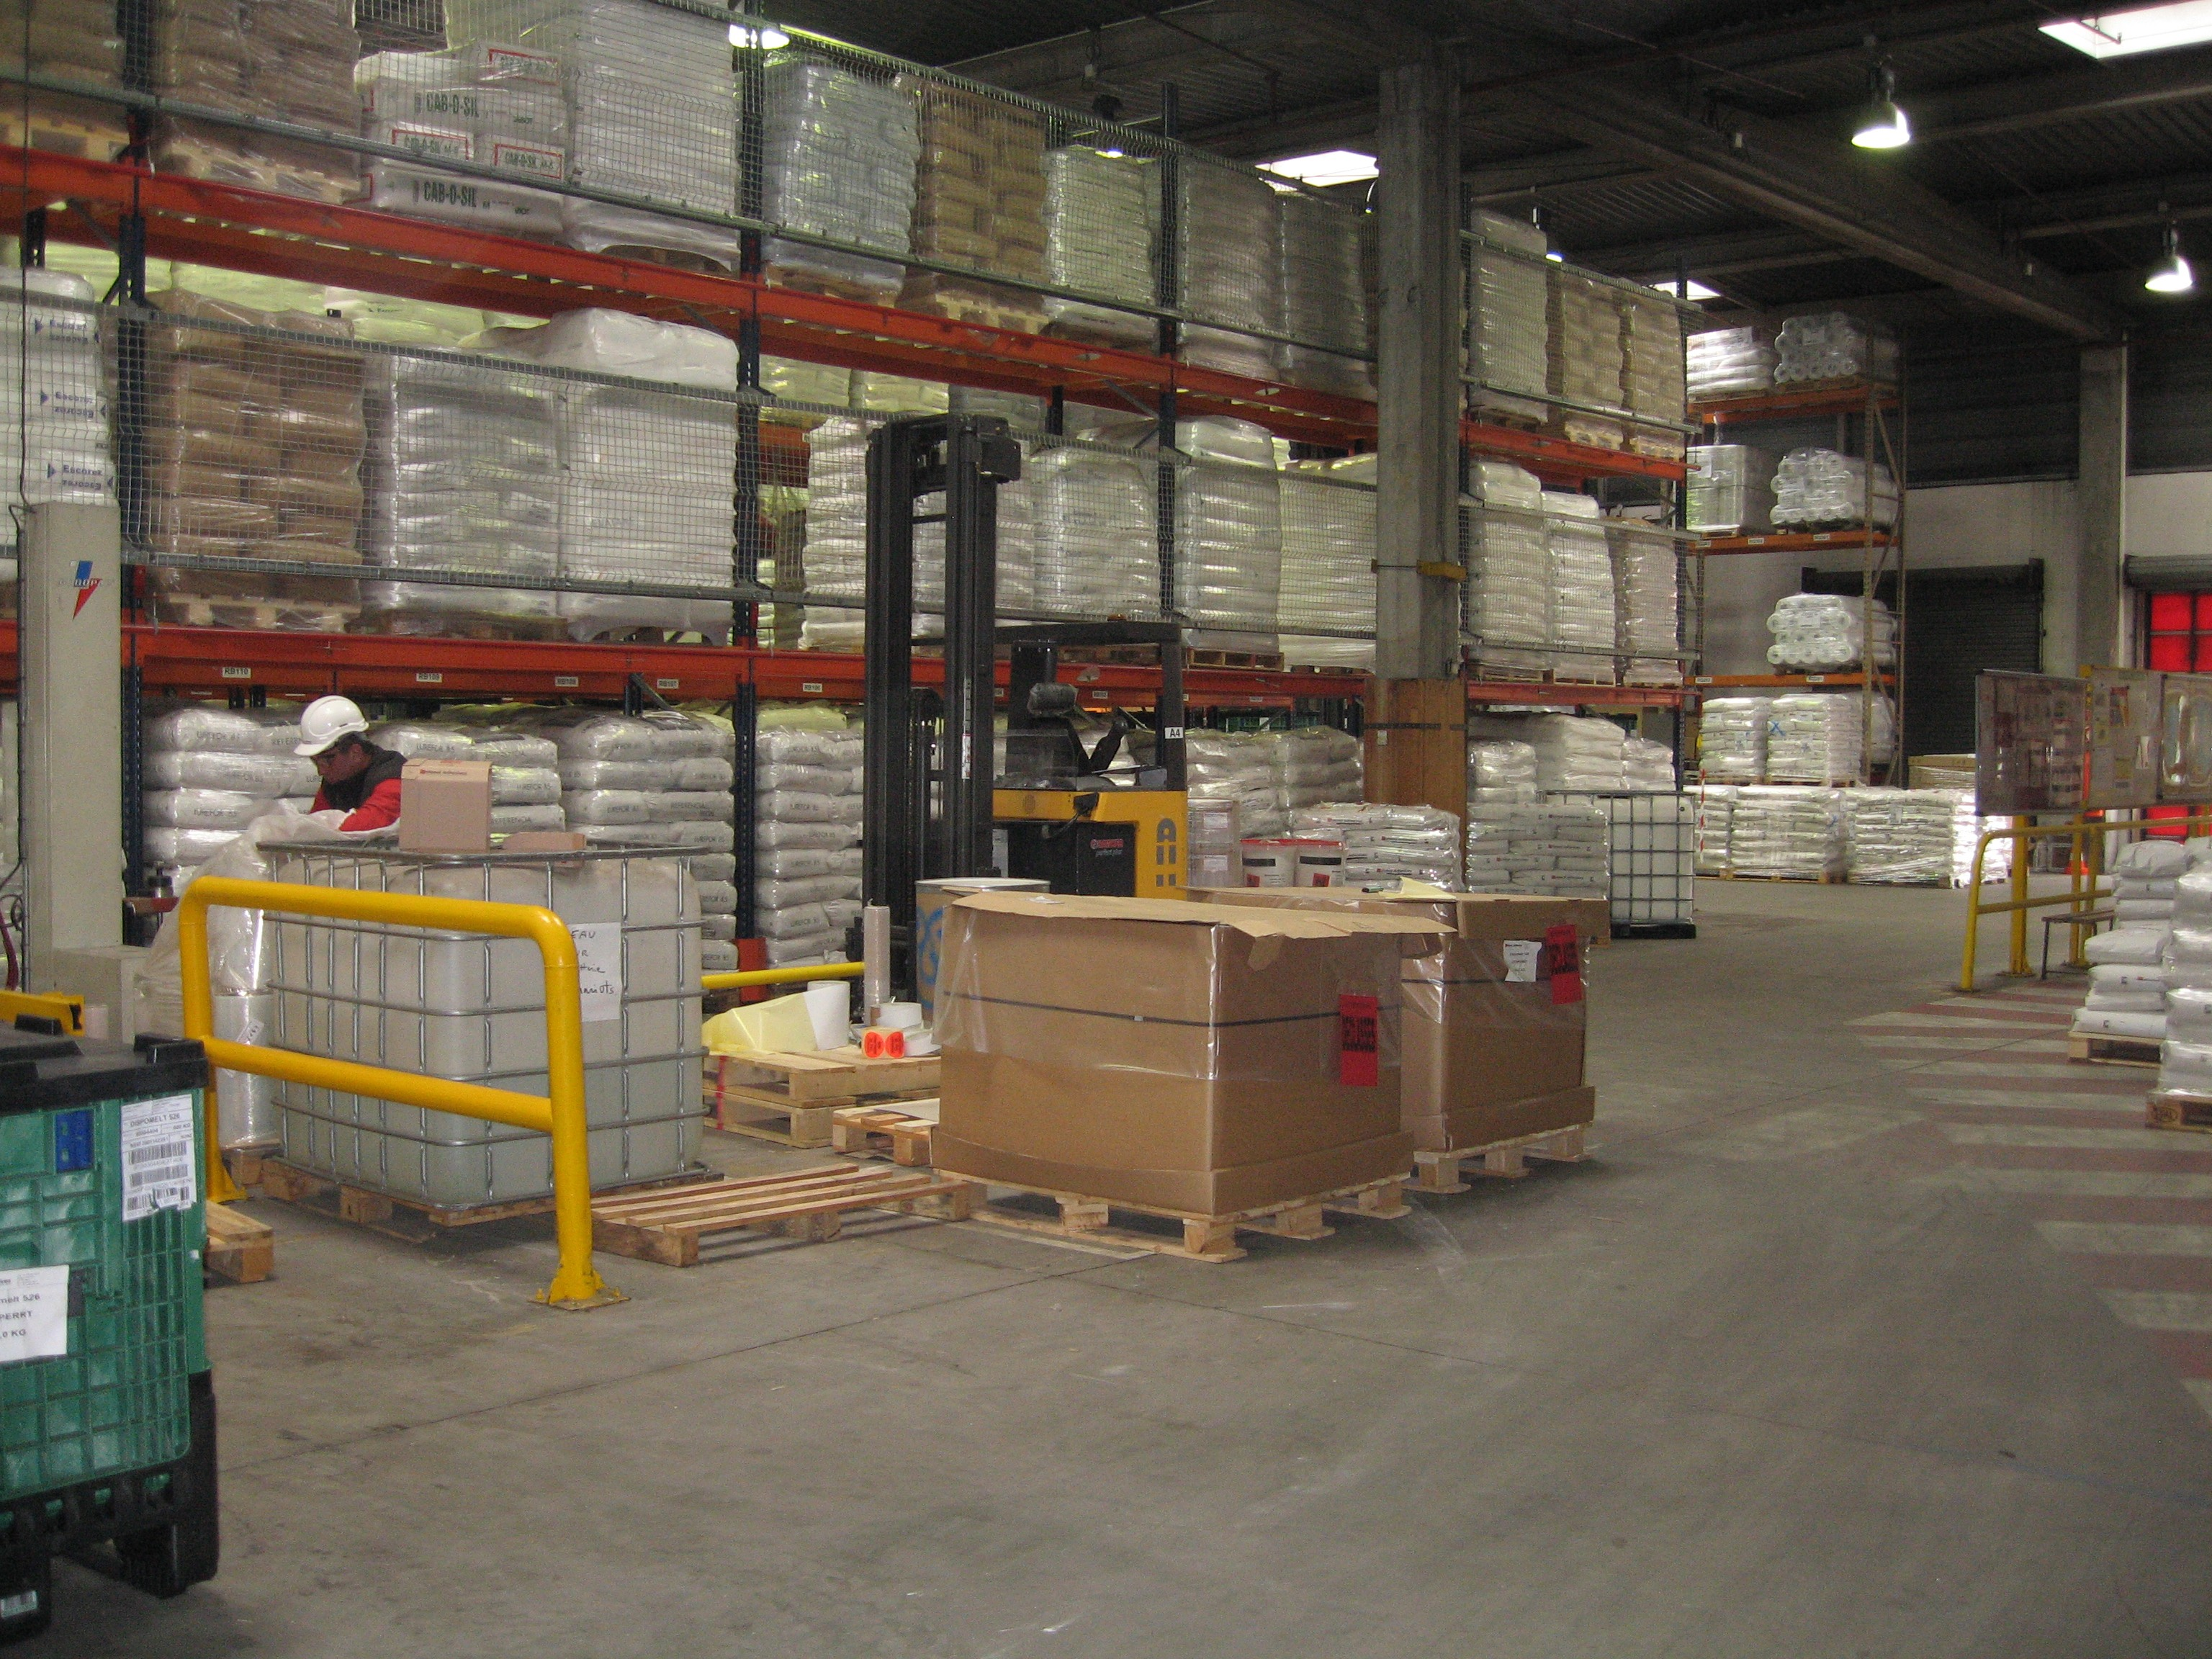 How are warehouses using smart glasses?